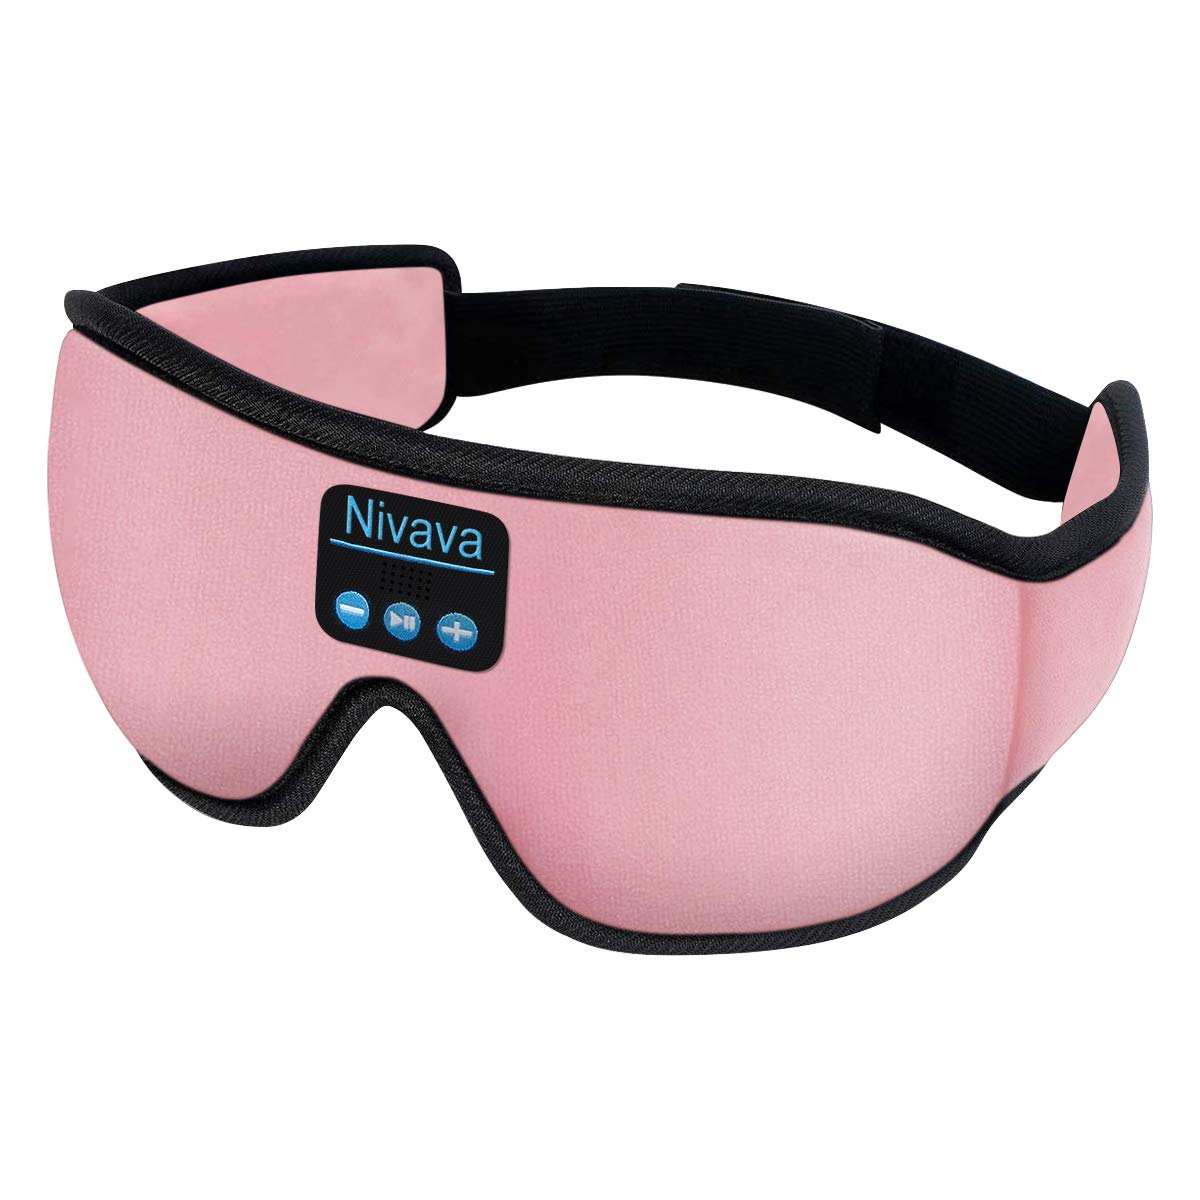 Nivava S8 Sleeping Headphones Bluetooth 5.0 Wireless 3D Eye Mask for Side Sleepers Washable Adjustable Perfect for Traveling Pink